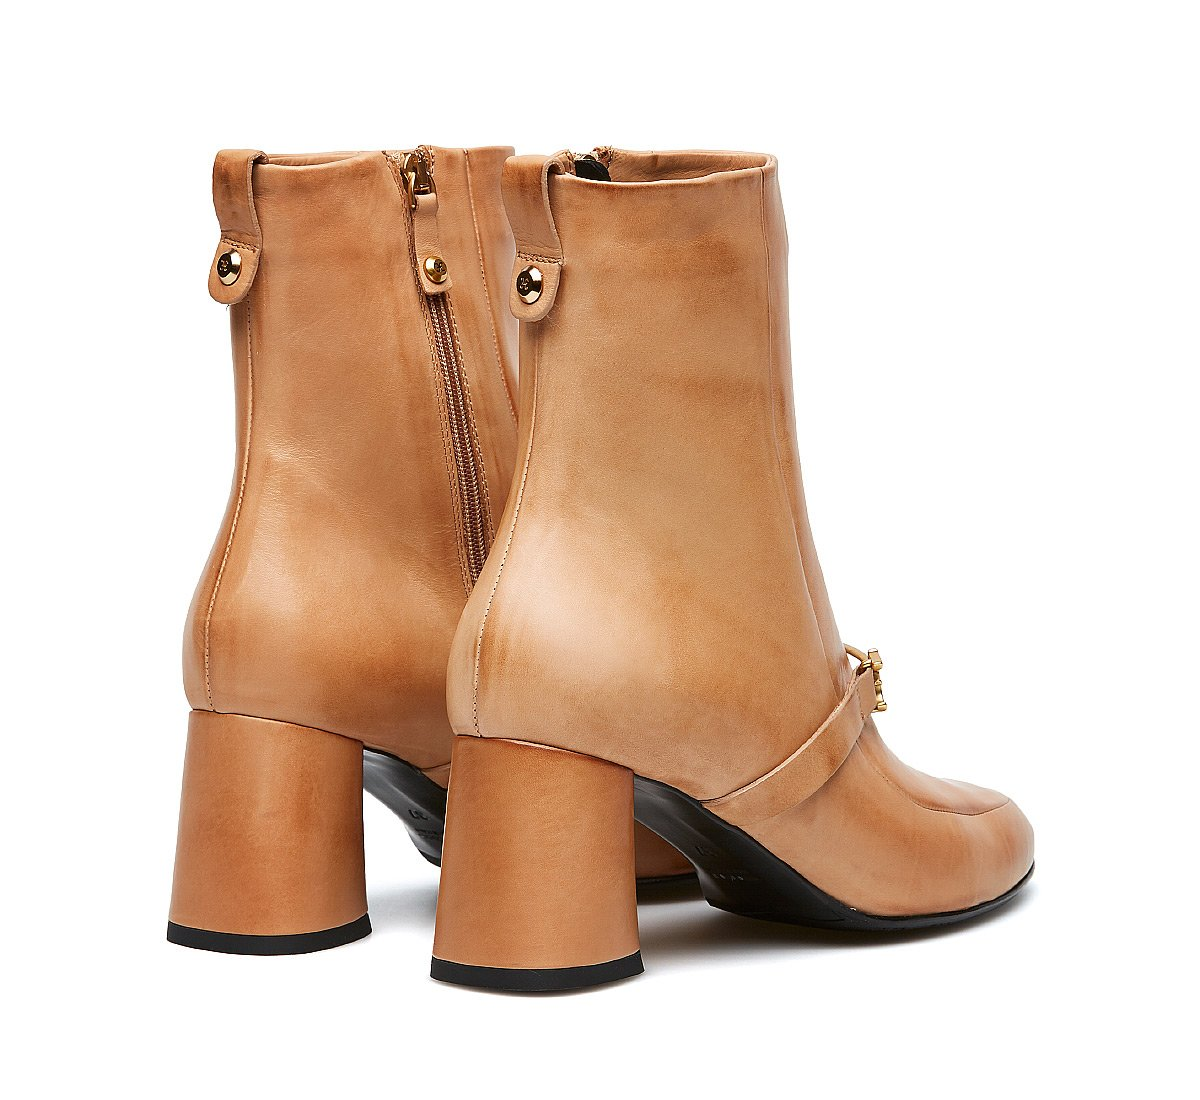 Fabi iconic ankle boots in soft calfskin